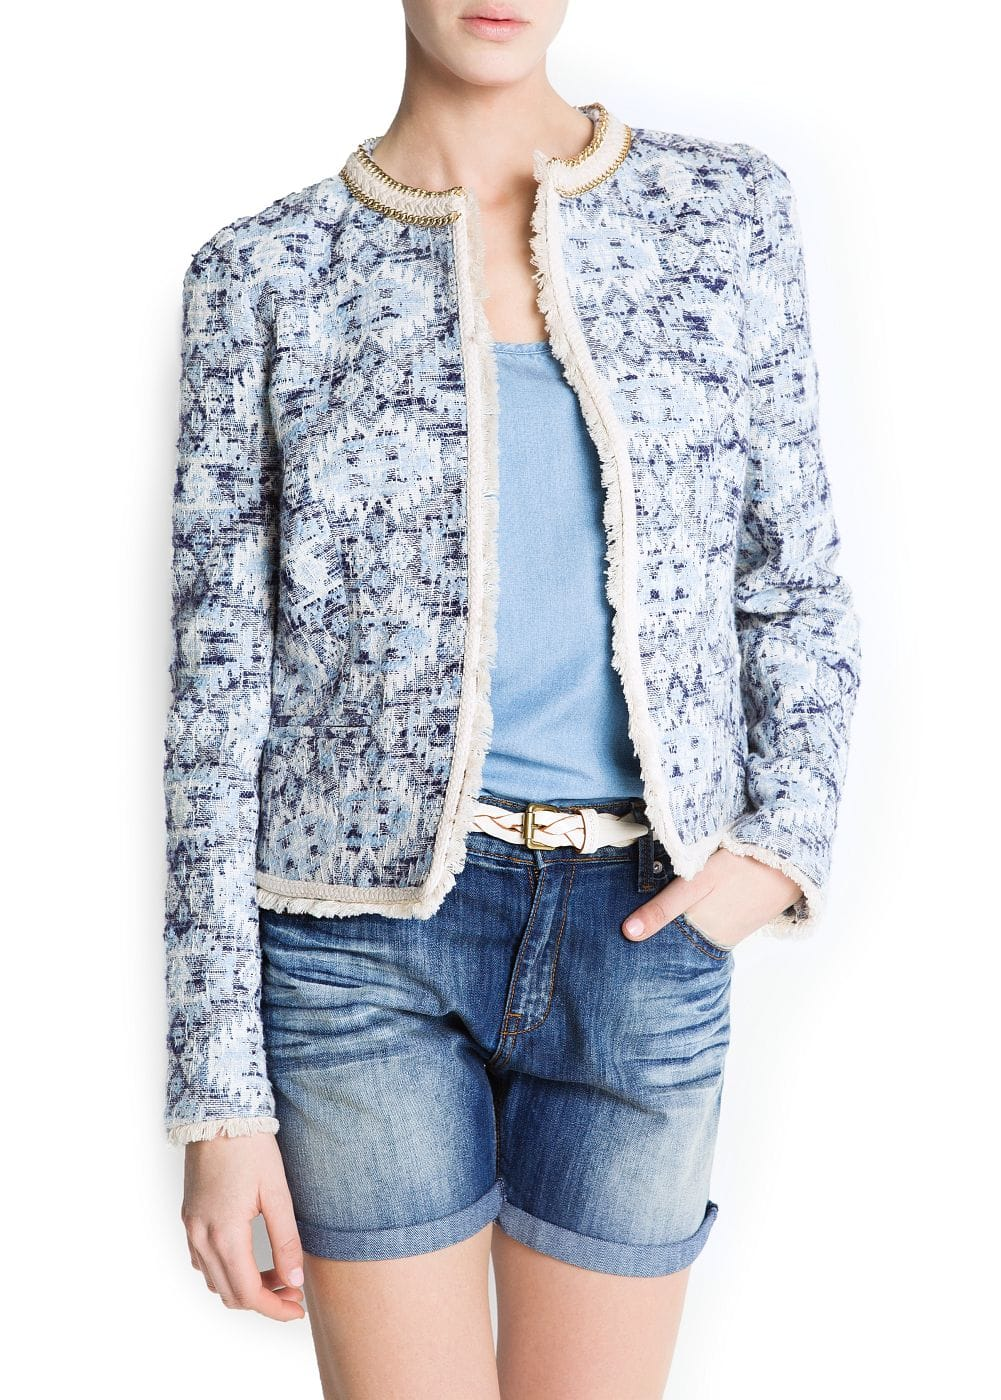 Ethnic fabric jacket